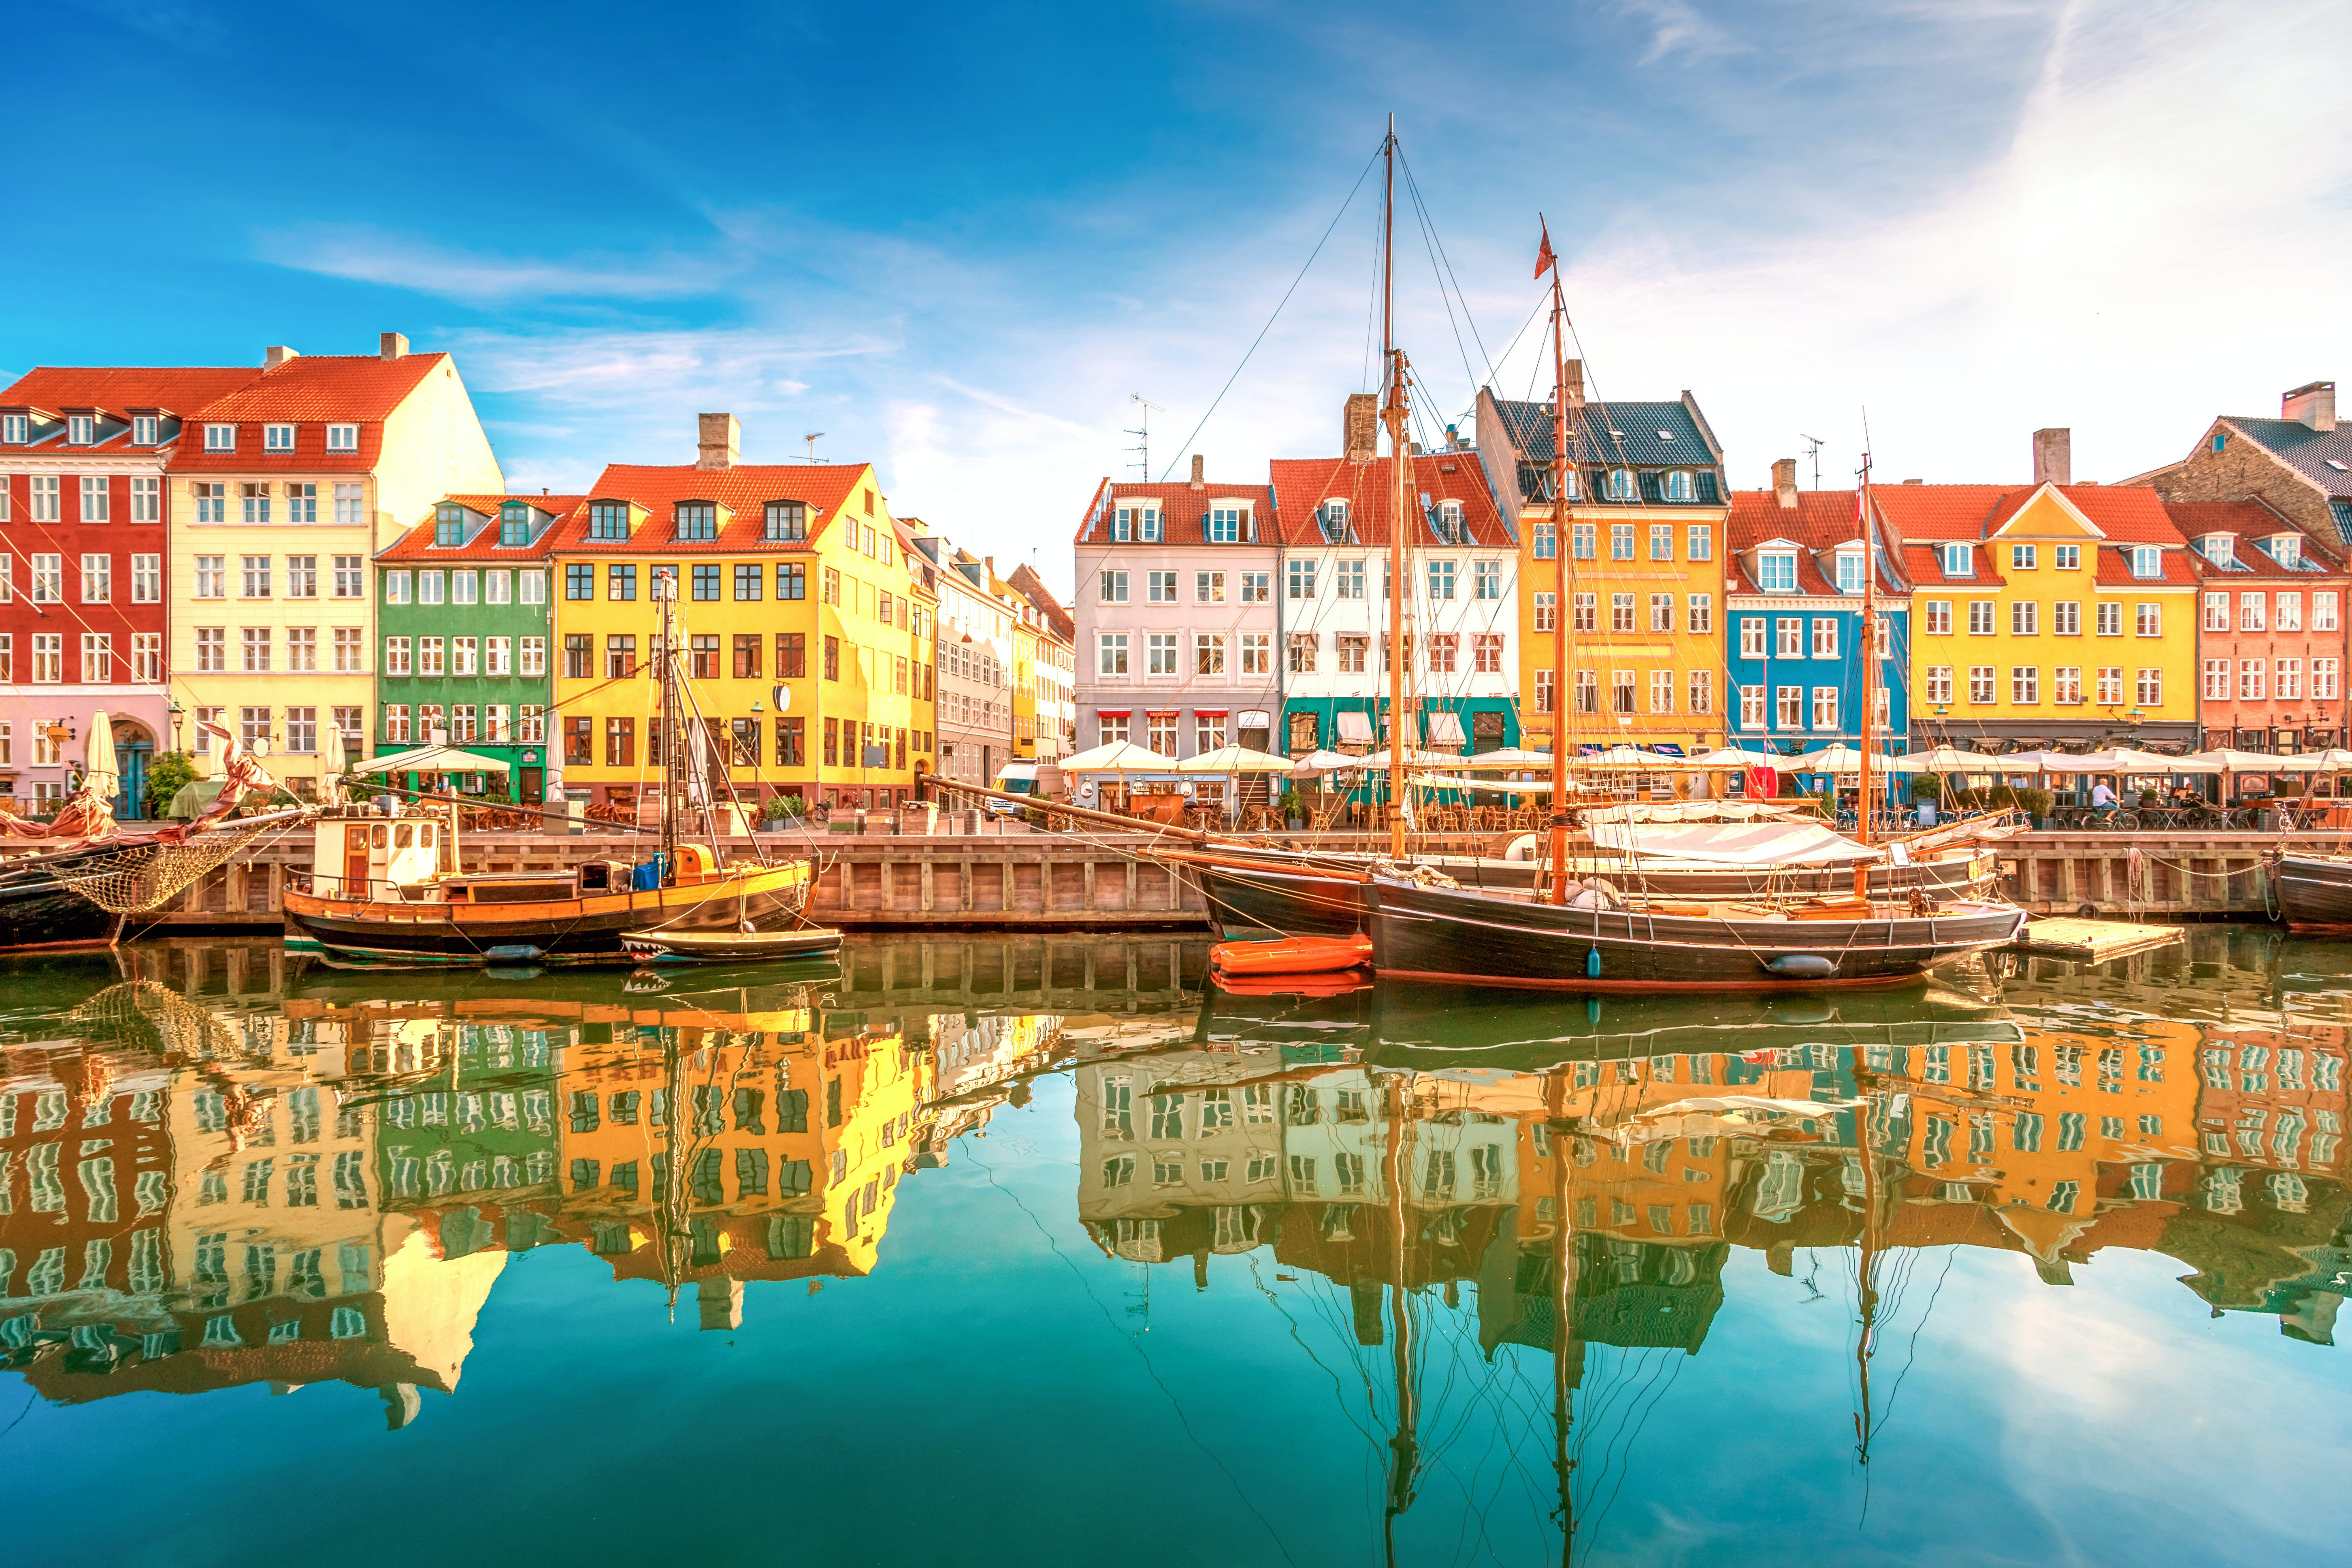 6 Reasons Why Finding a Student Job in Scandinavia is Easier